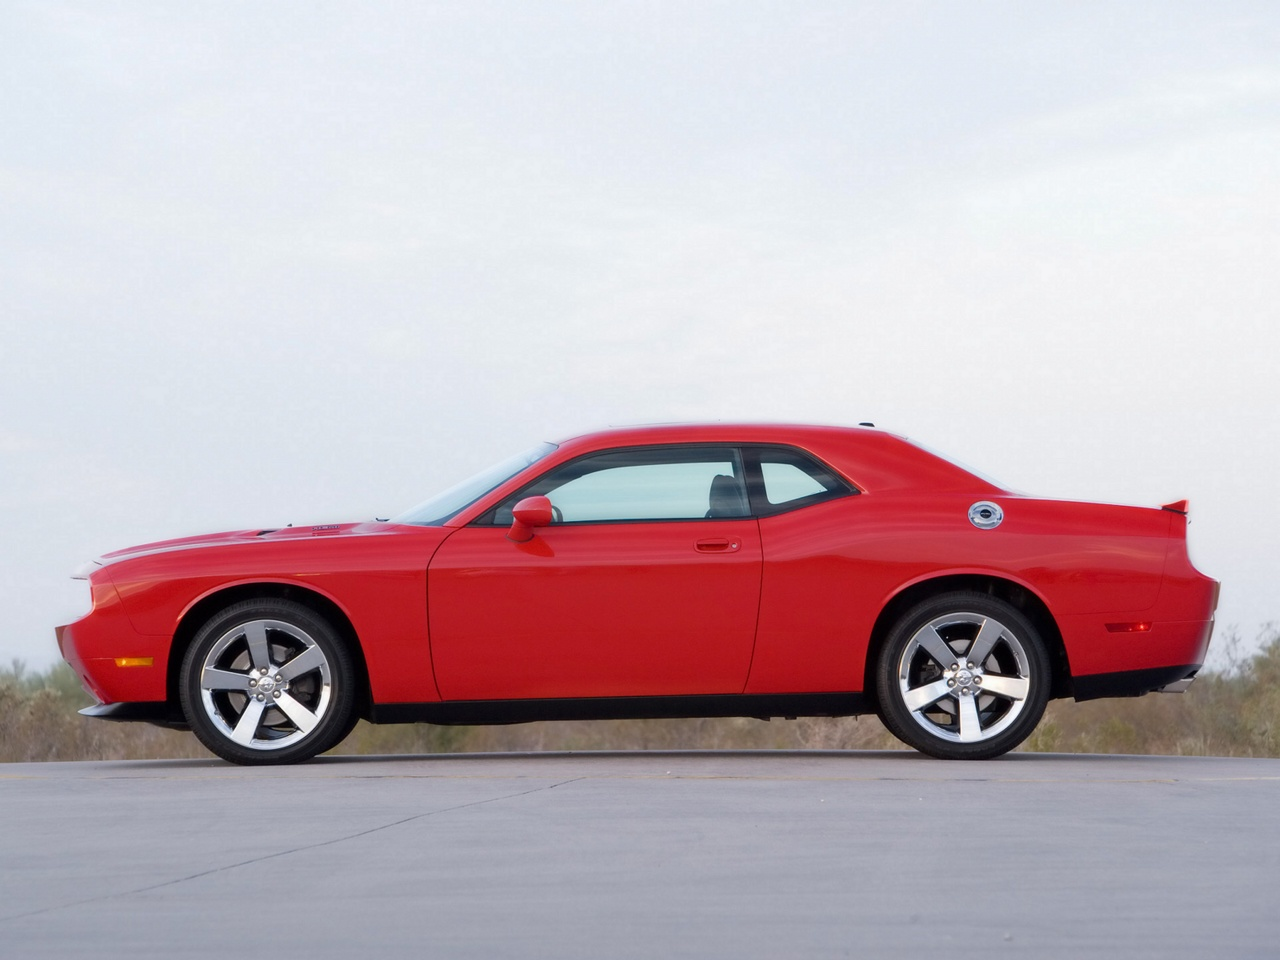 2009 dodge challenger rt motor desktop. Cars Review. Best American Auto & Cars Review